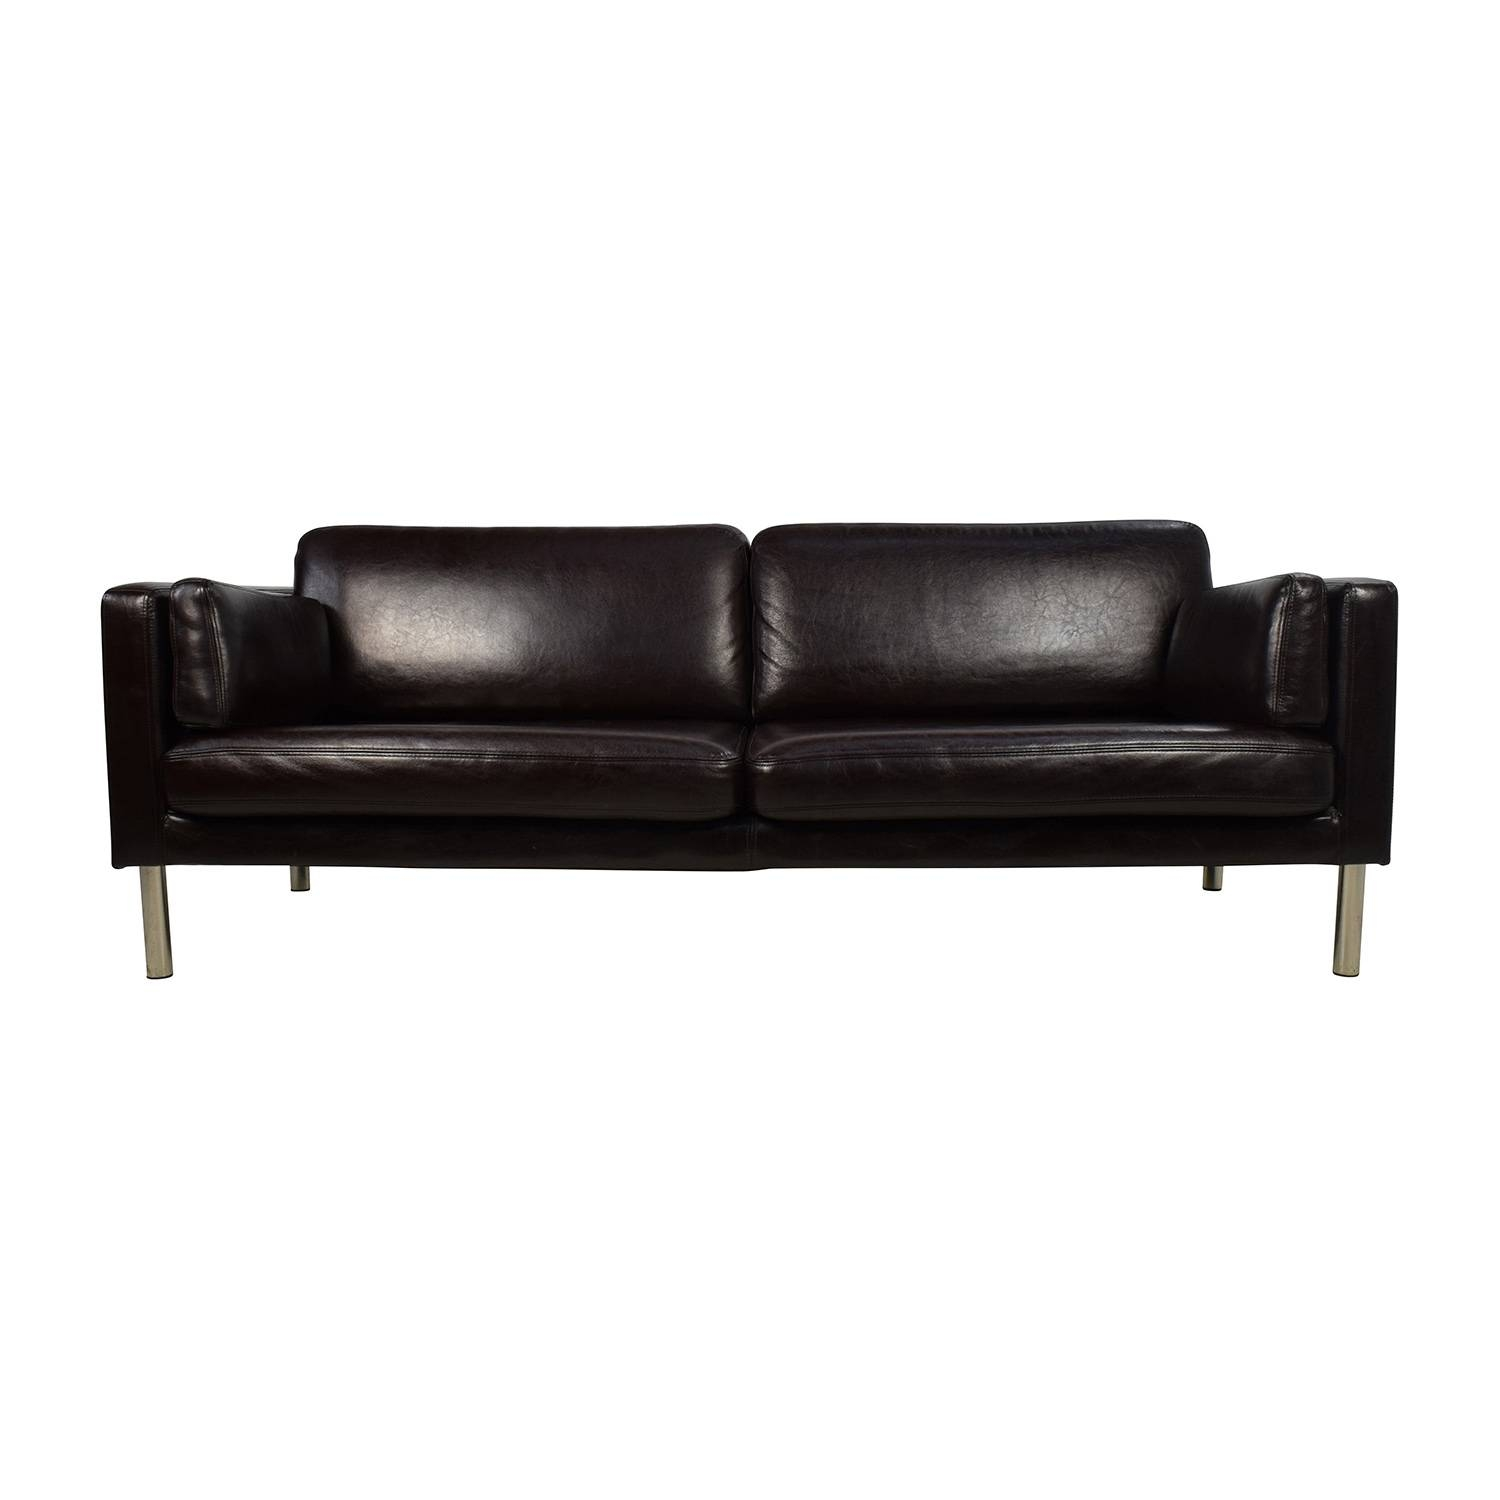 76% Off - Brown Leather Sofa With Chrome Legs / Sofas intended for Sofas With Chrome Legs (Image 2 of 15)